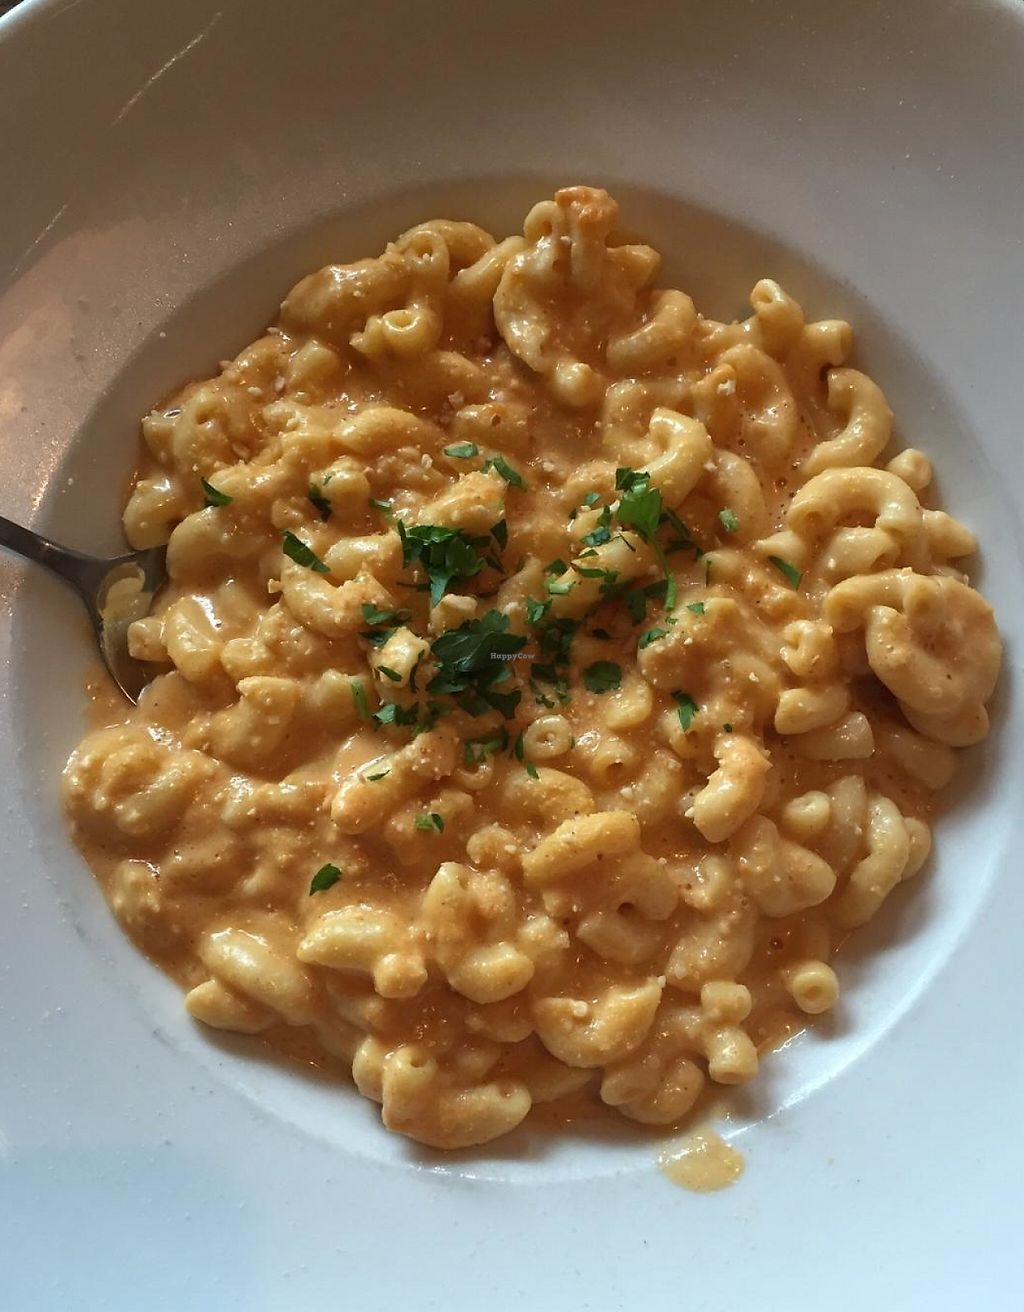 """Photo of Saranac Public House  by <a href=""""/members/profile/HeatherMeese"""">HeatherMeese</a> <br/>Vegan Mac and Cheese <br/> February 7, 2015  - <a href='/contact/abuse/image/55495/233566'>Report</a>"""